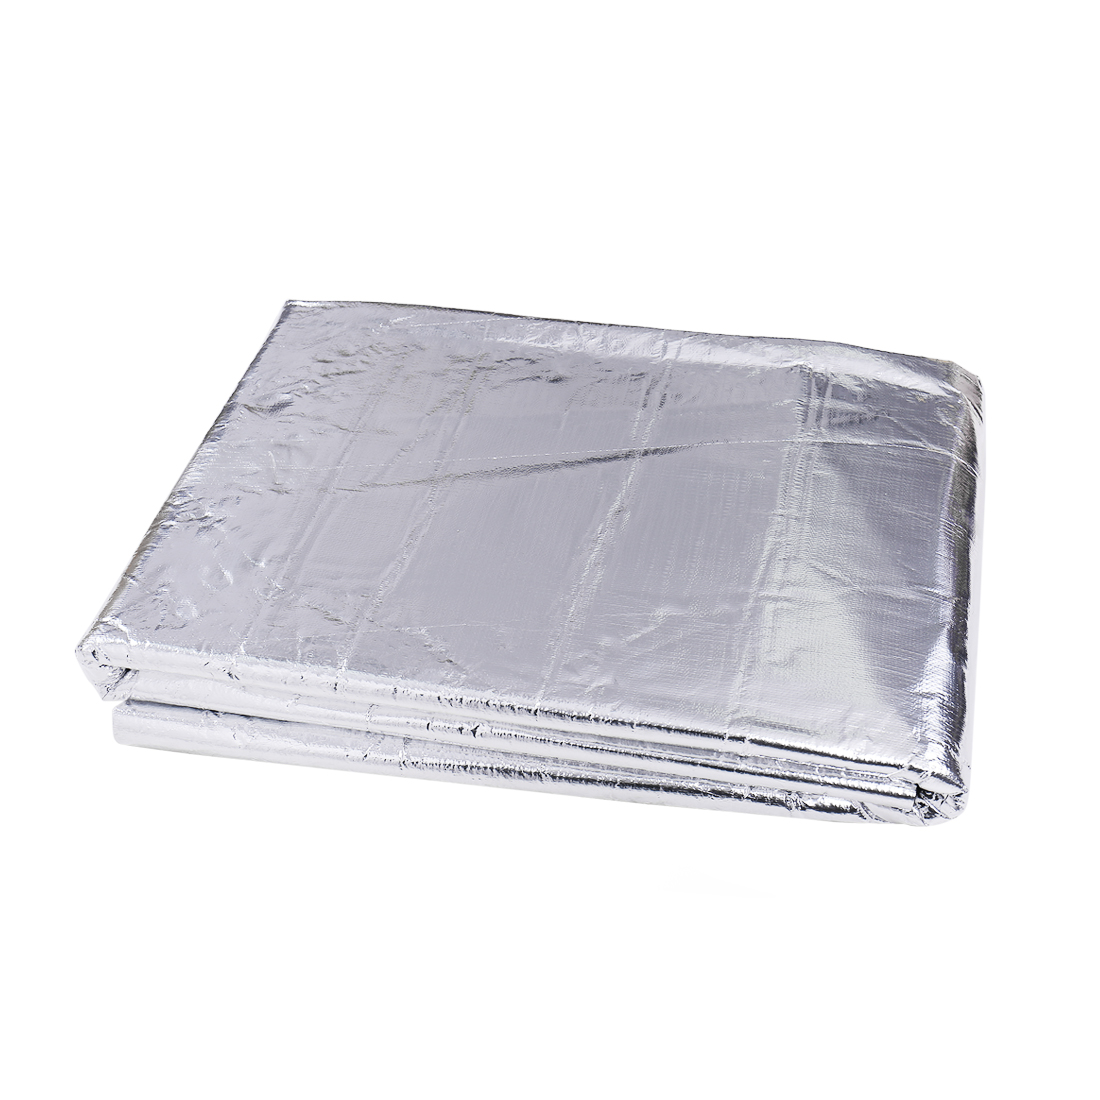 "197mil 16.36sqft Car Heatproof Sound Deadener Thicker Aluminum Foil Mat 60""x40"""